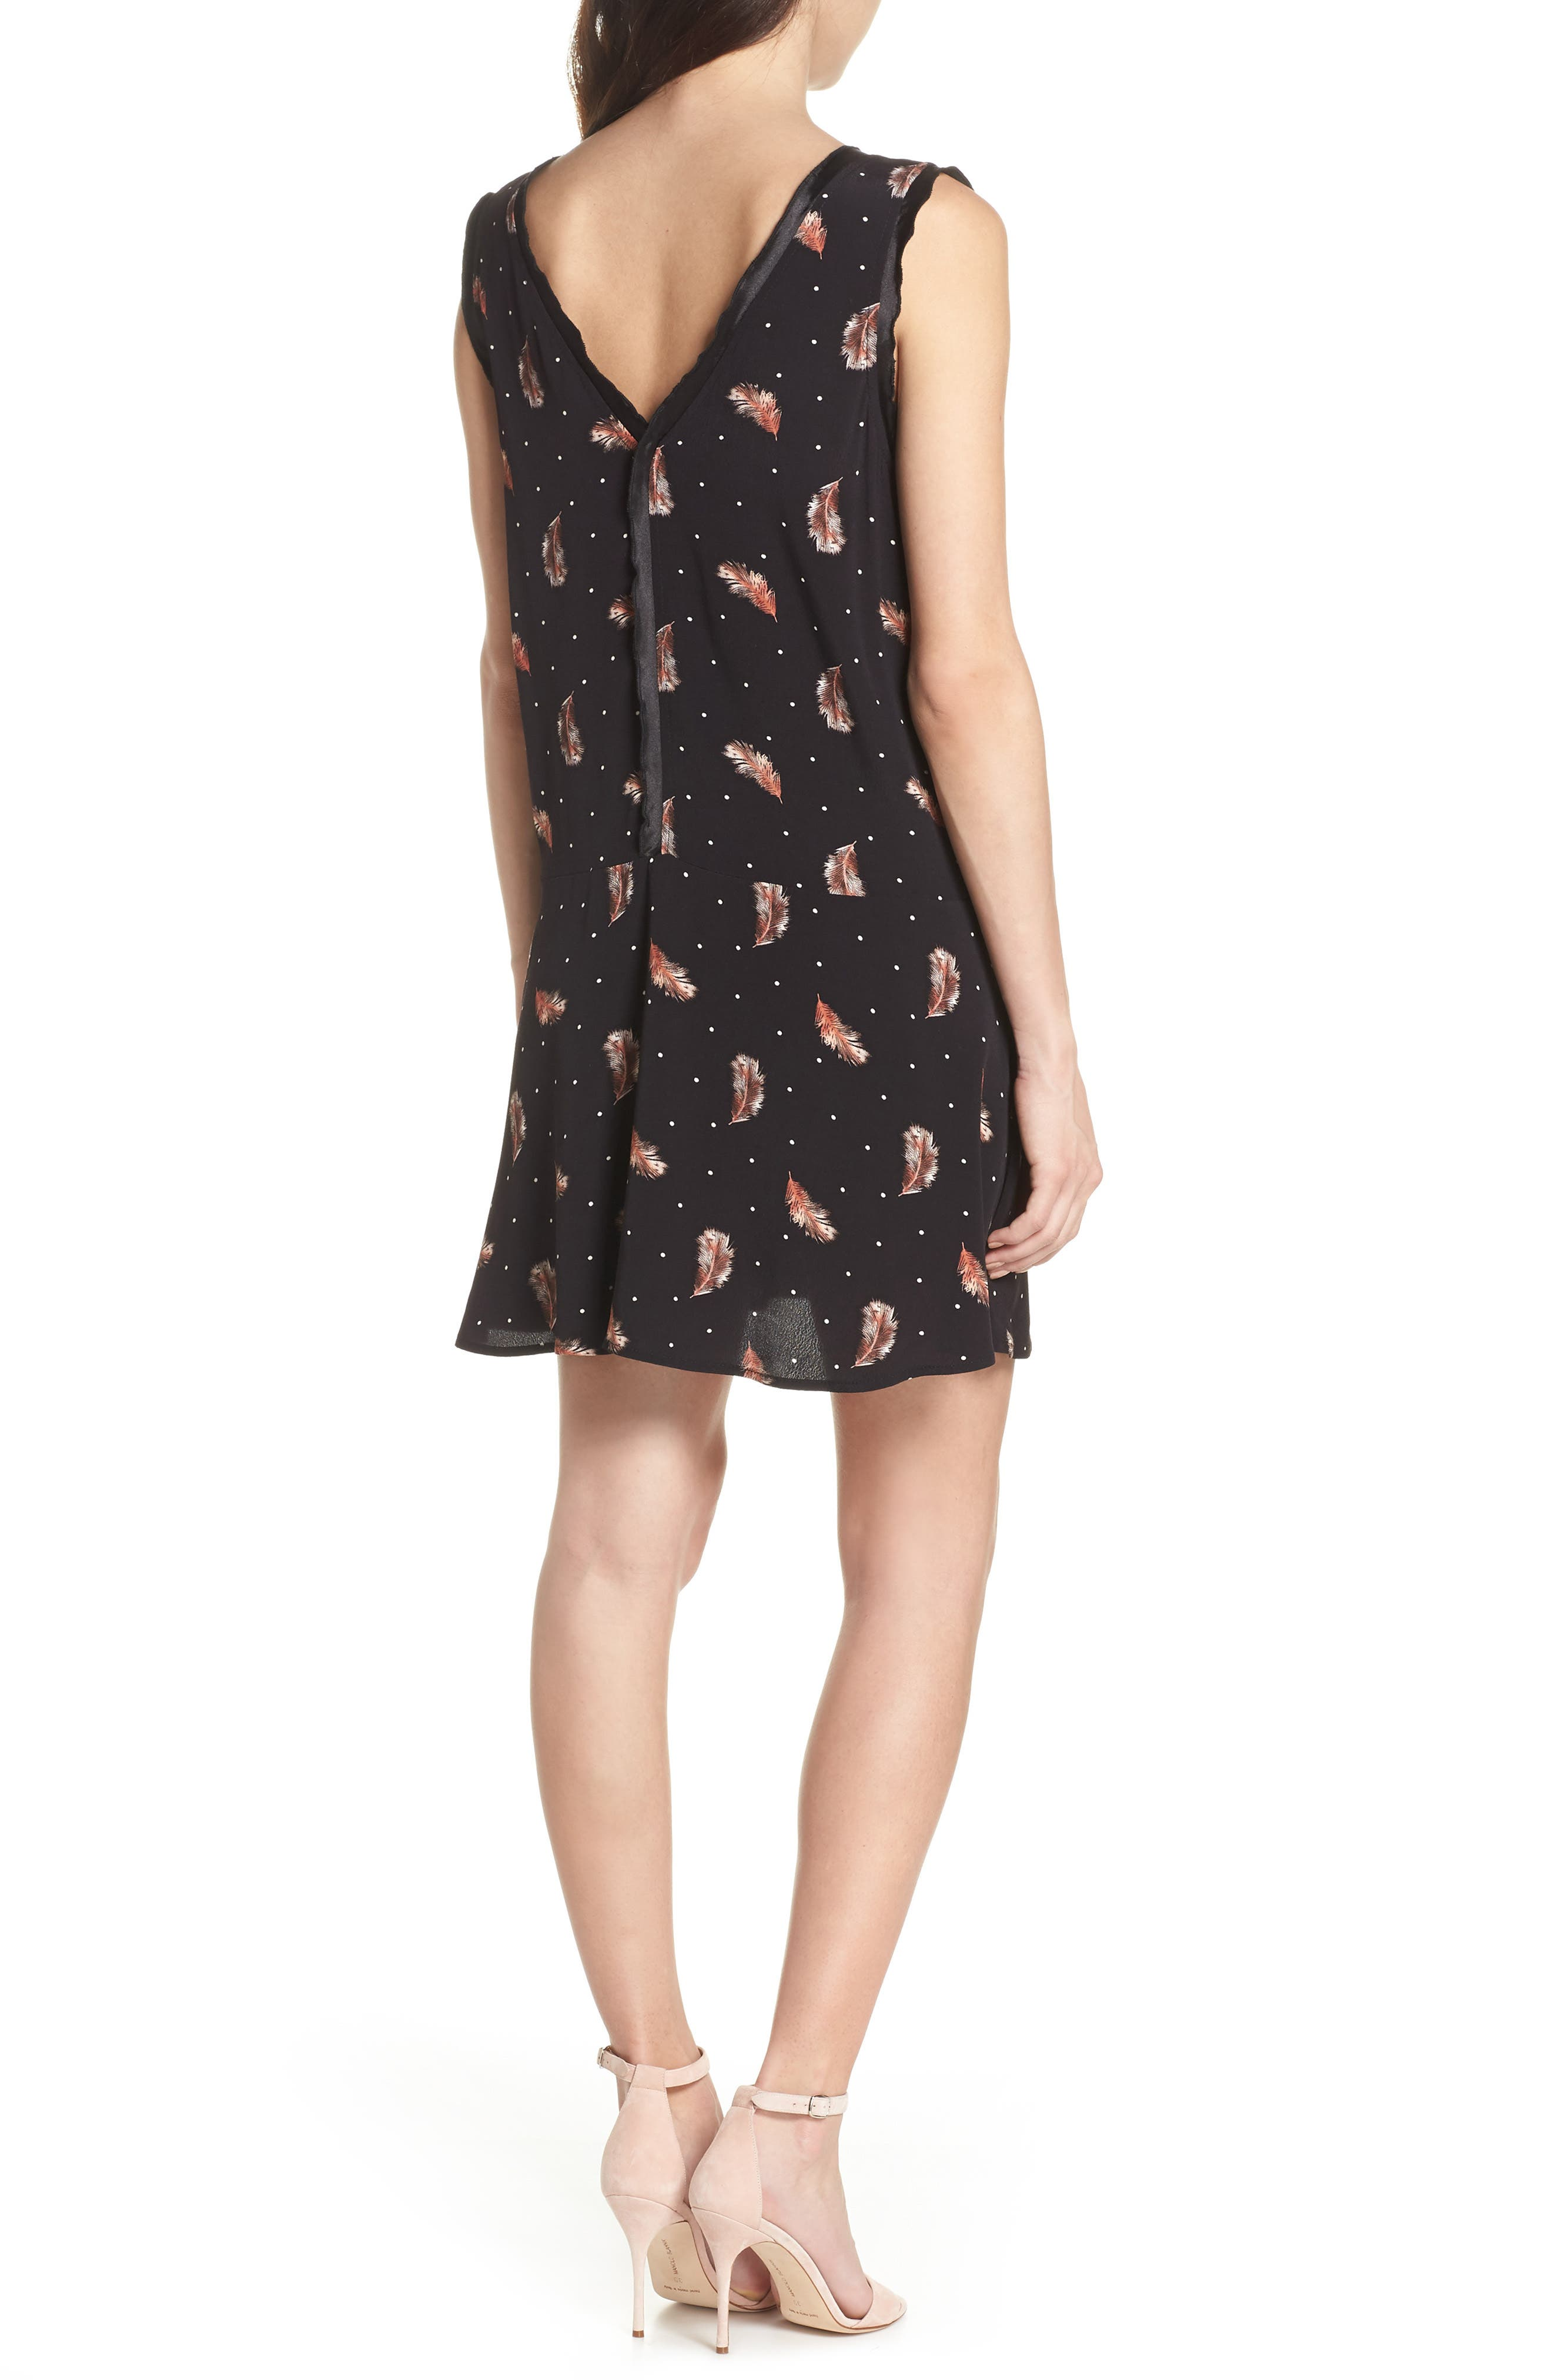 Tuesday Feather Print Dress,                             Alternate thumbnail 2, color,                             Black Feather Dot